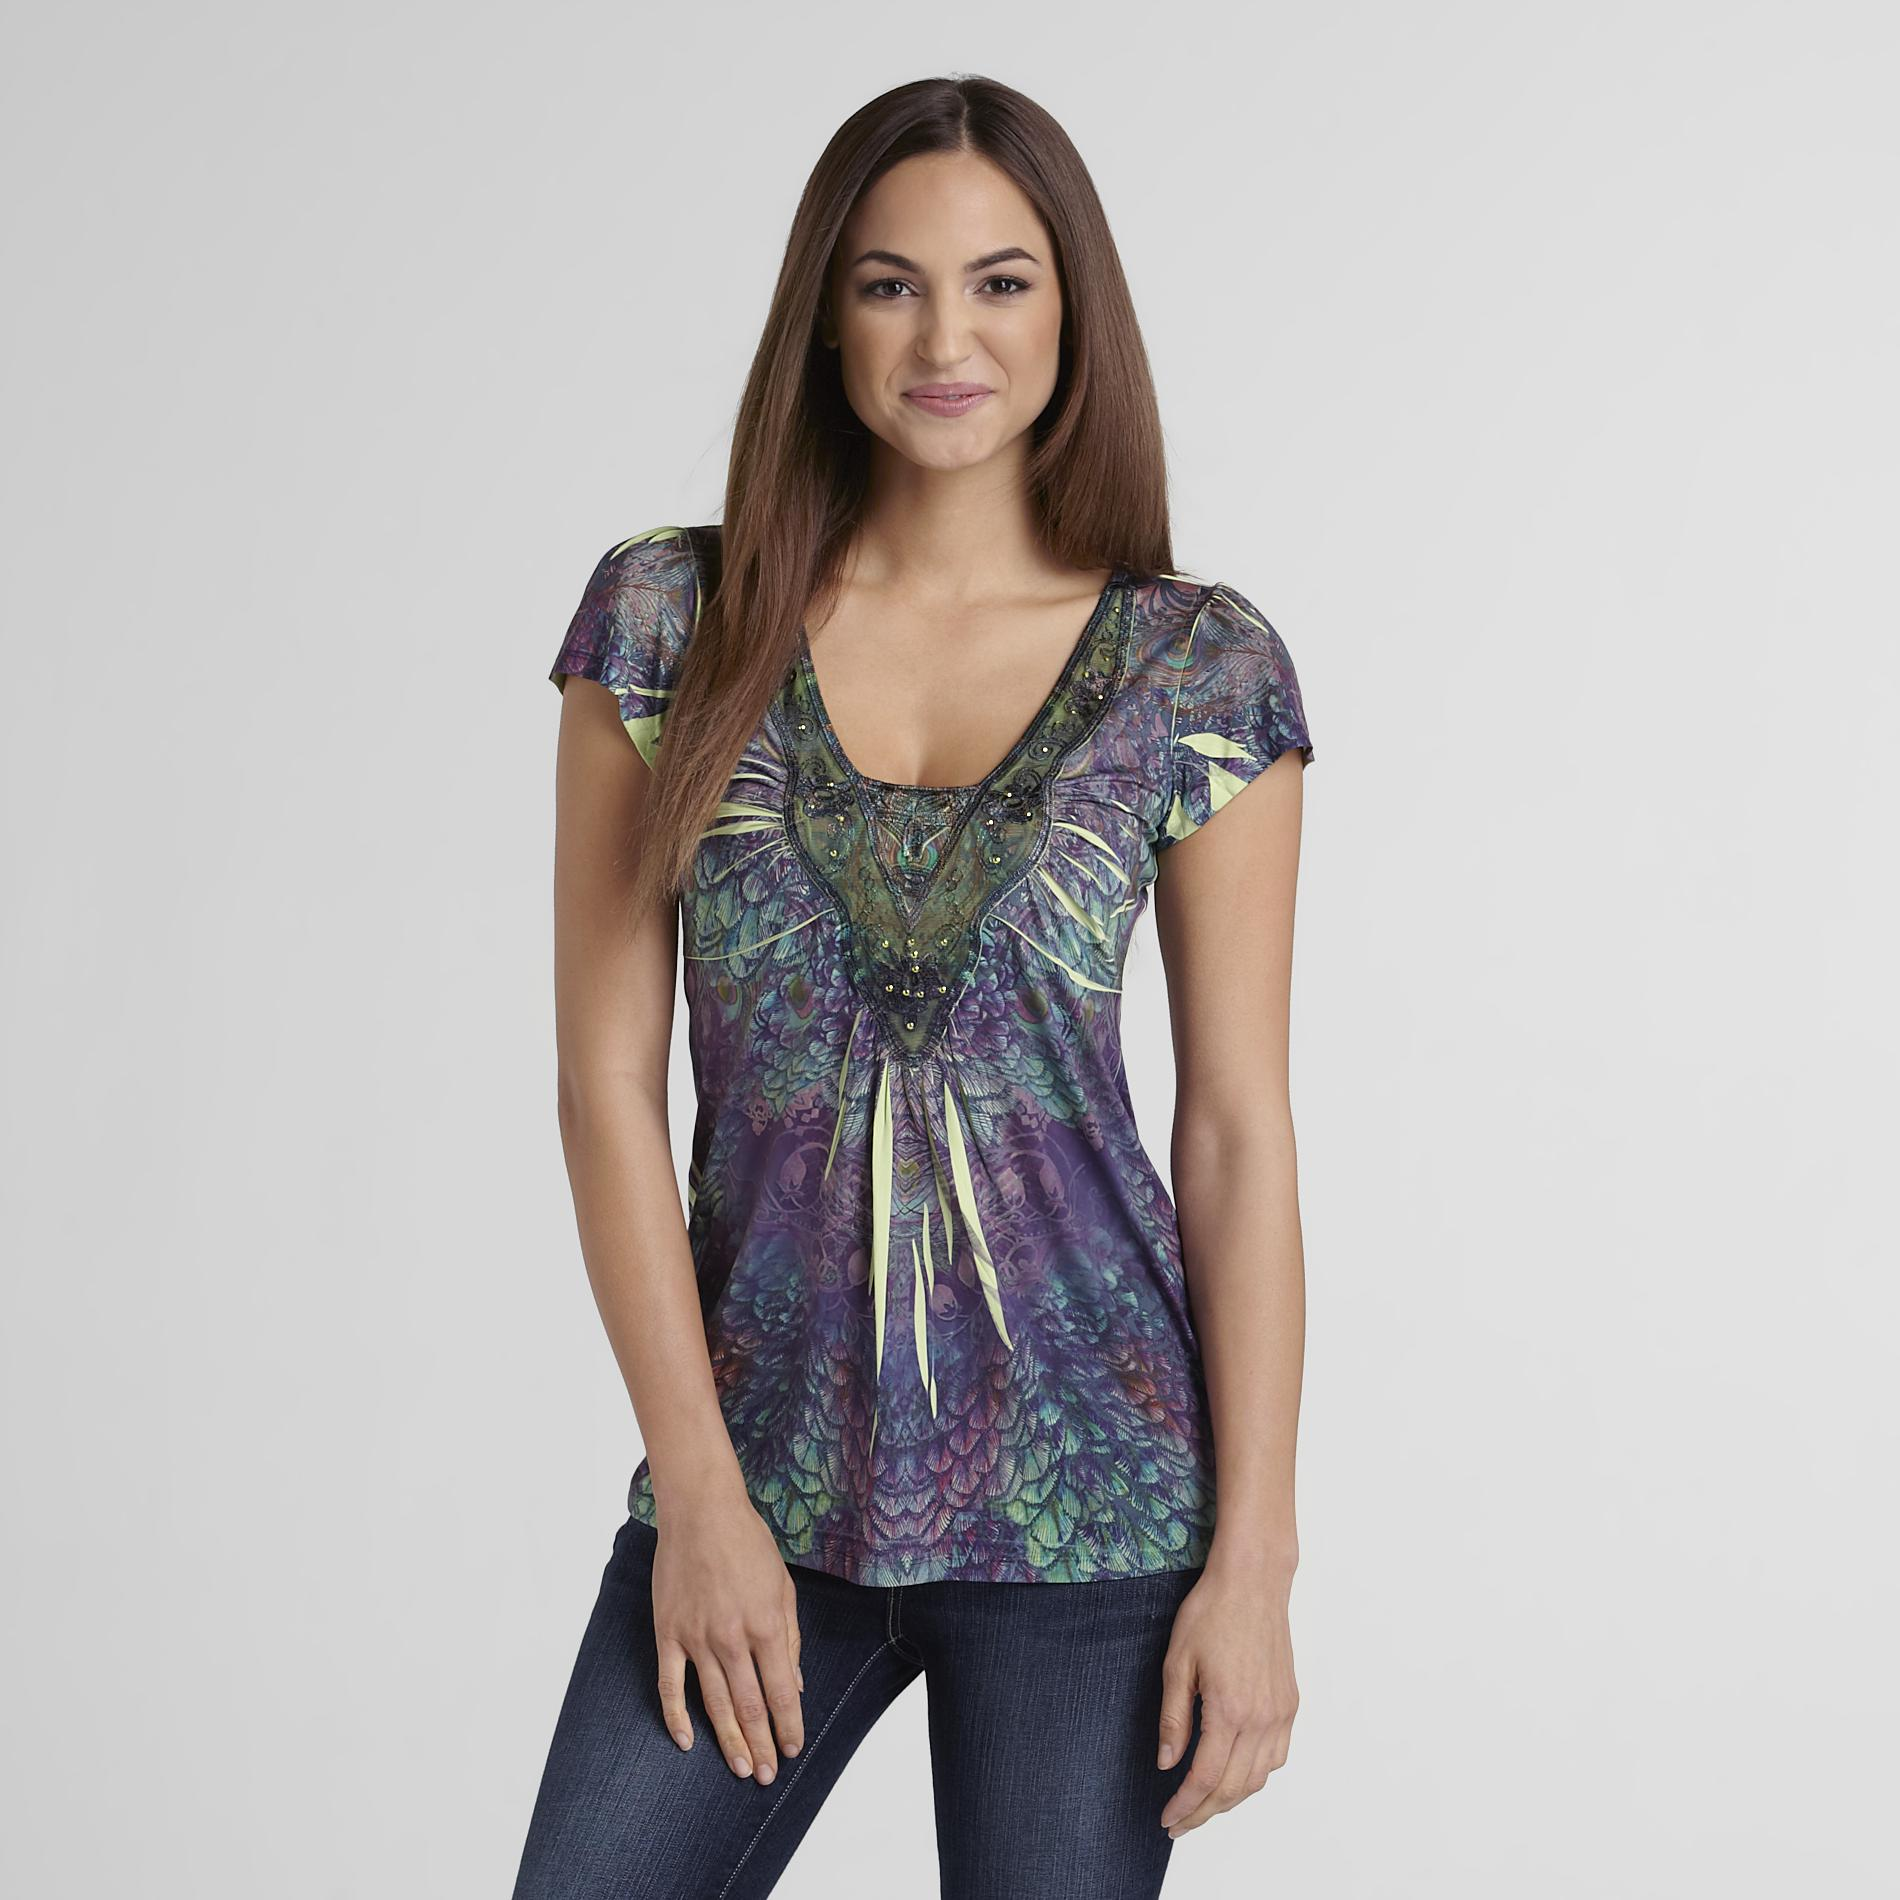 Covington Women's Lace-Neck Top - Sublimation at Sears.com